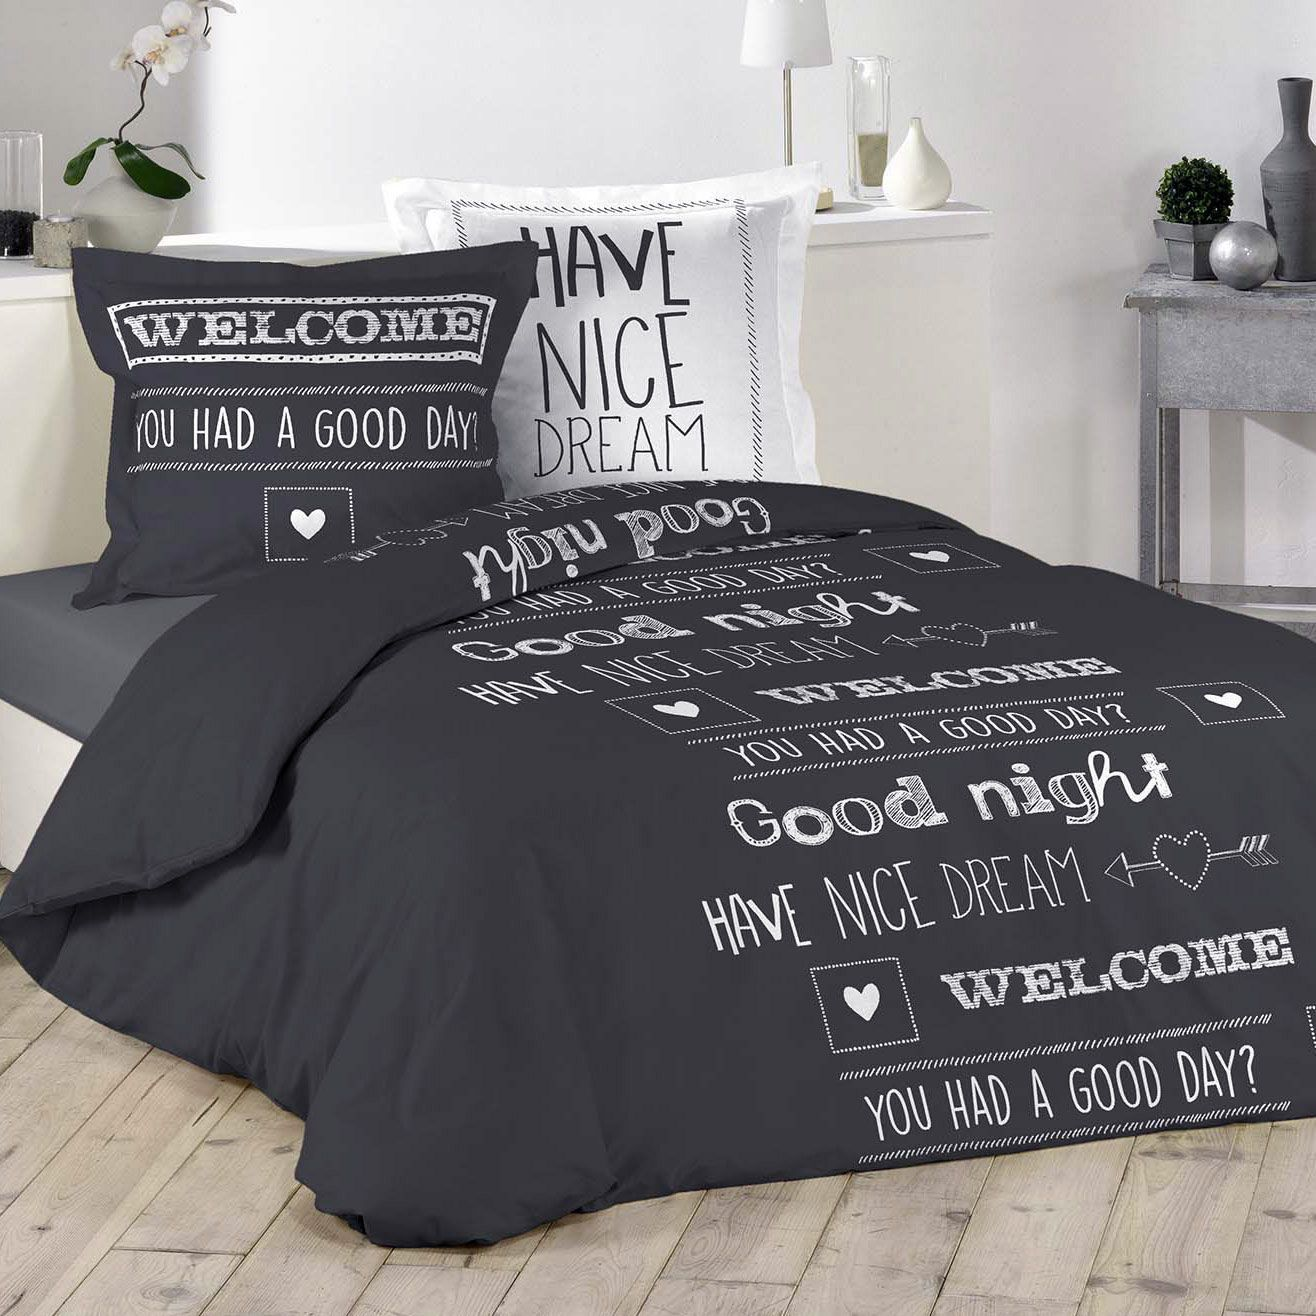 housse de couette et deux taies nice dream coton 240 cm gris anthracite housse de couette. Black Bedroom Furniture Sets. Home Design Ideas